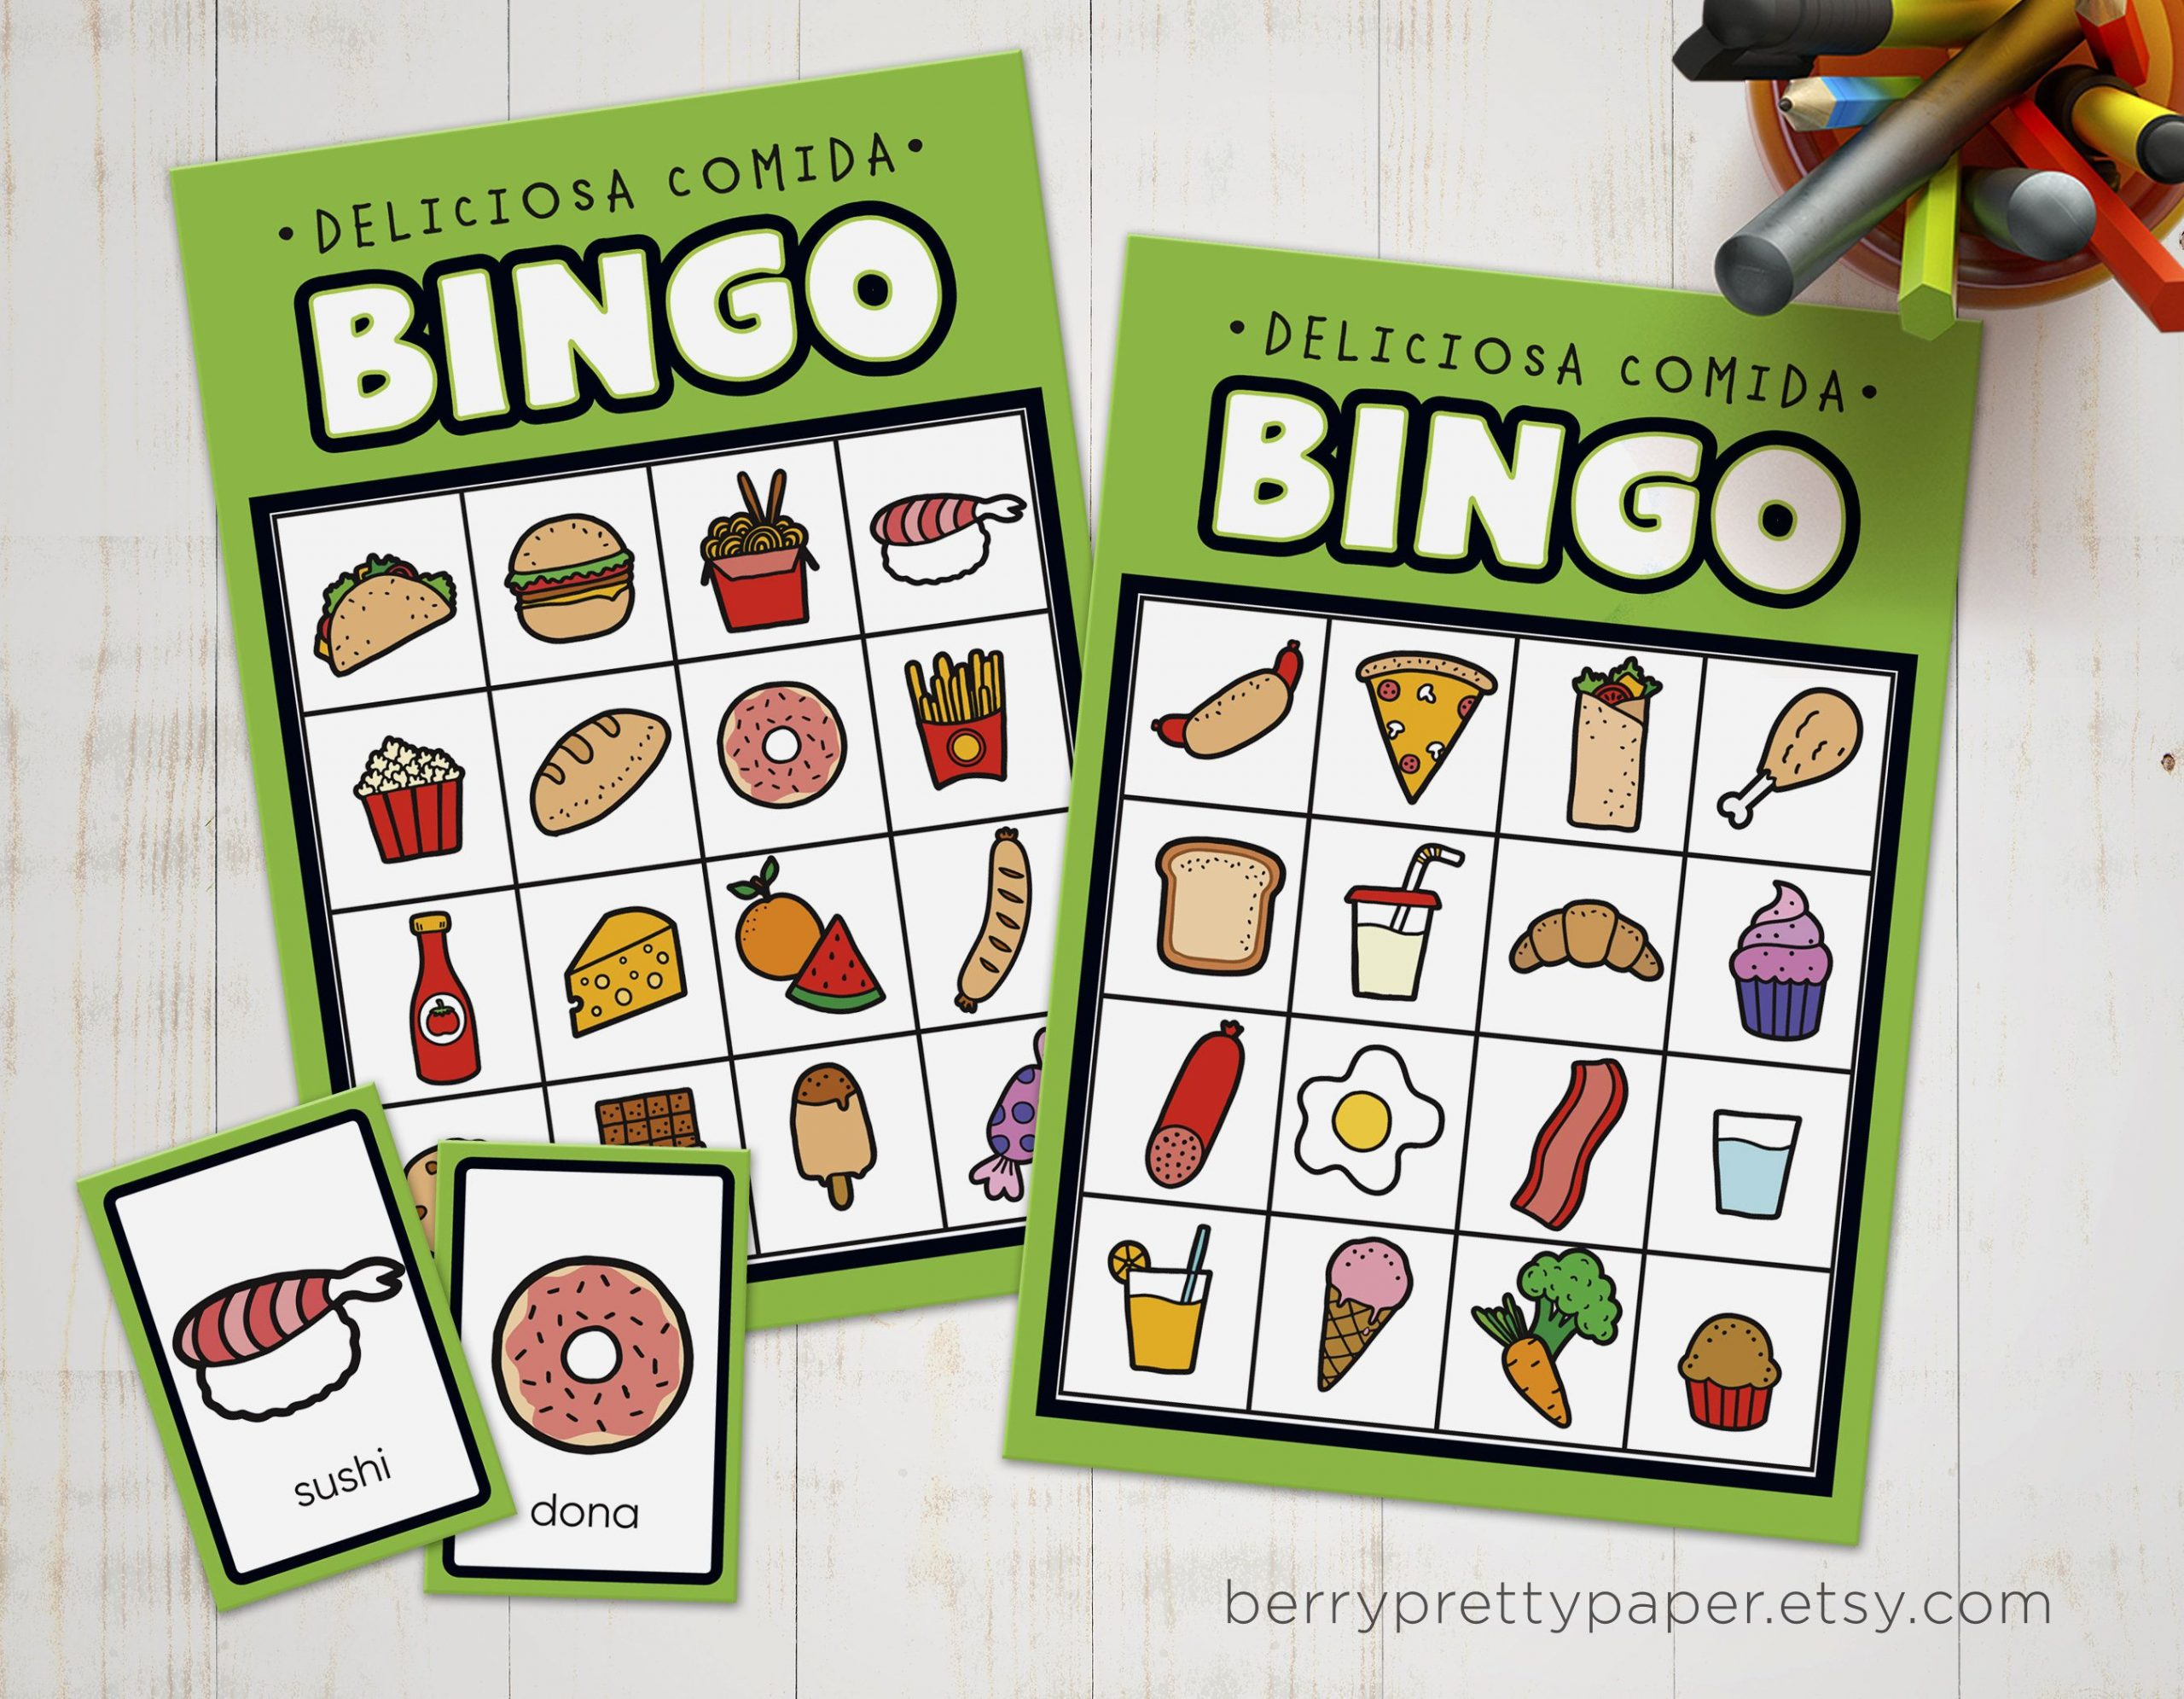 Bingo In Spanish For Kids Food Version - Bingo Game To Learn